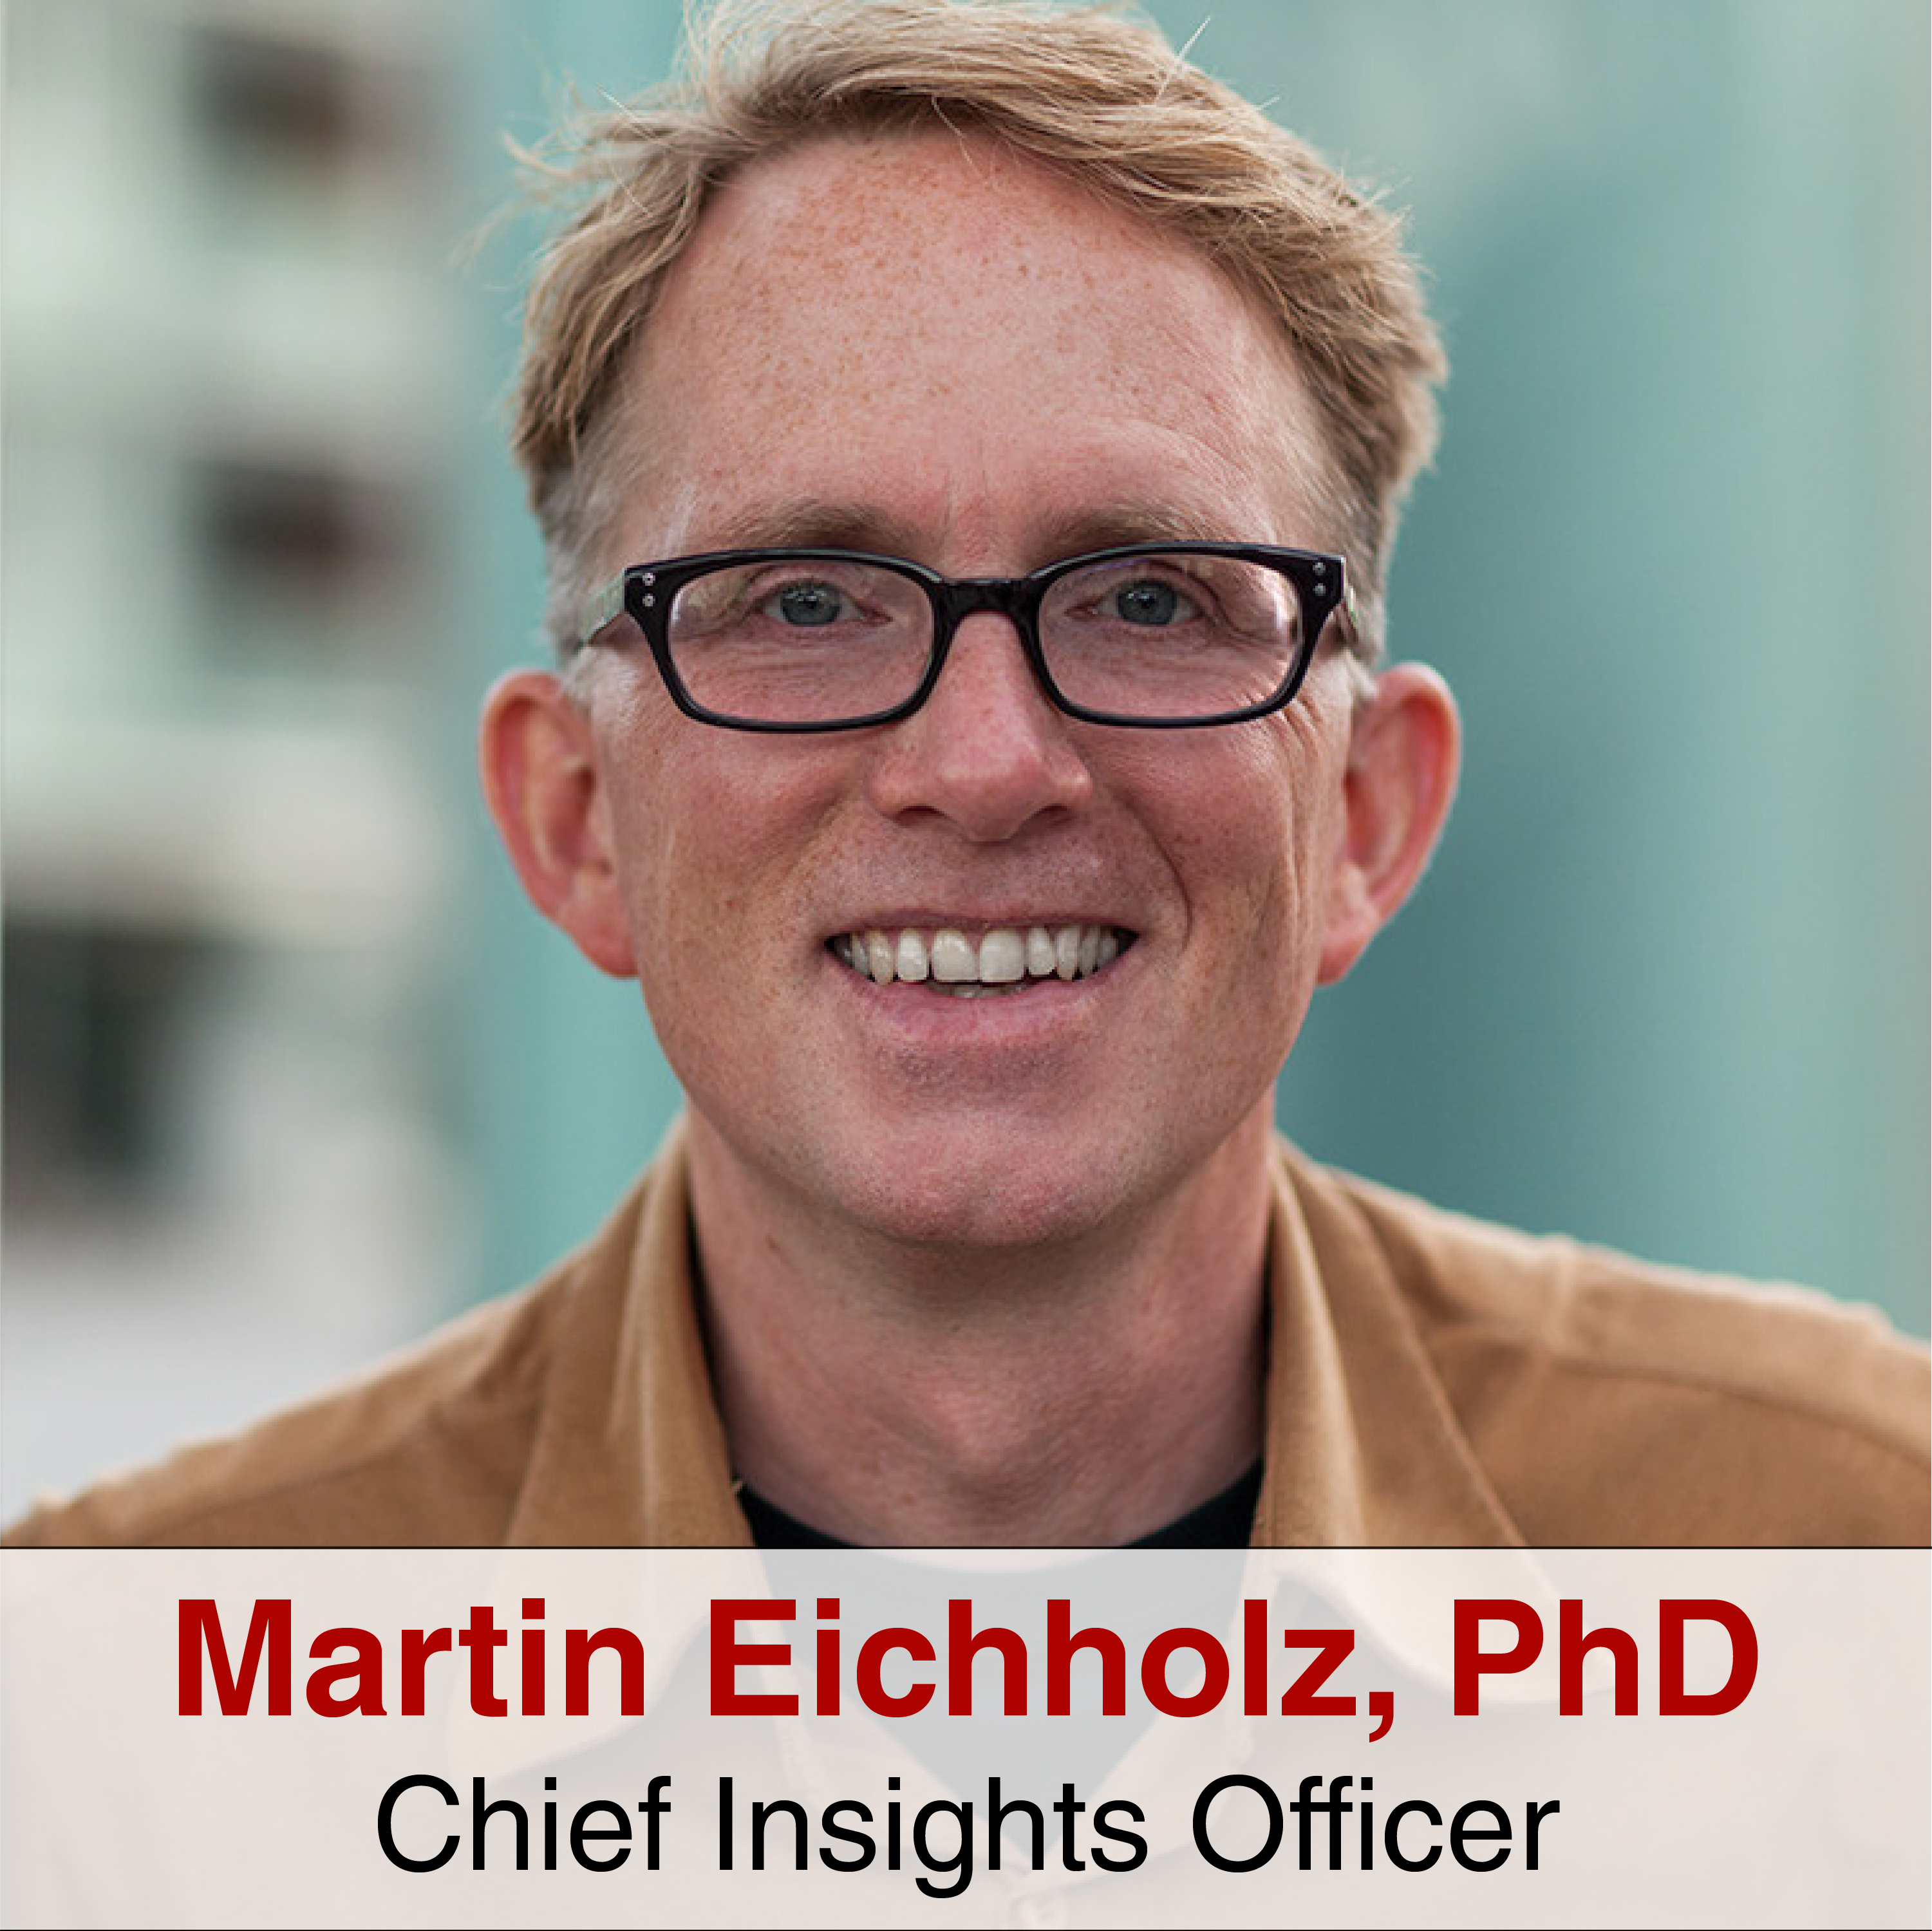 Martin Eichholz, PhD, Chief Insights Officer, Kelton Global